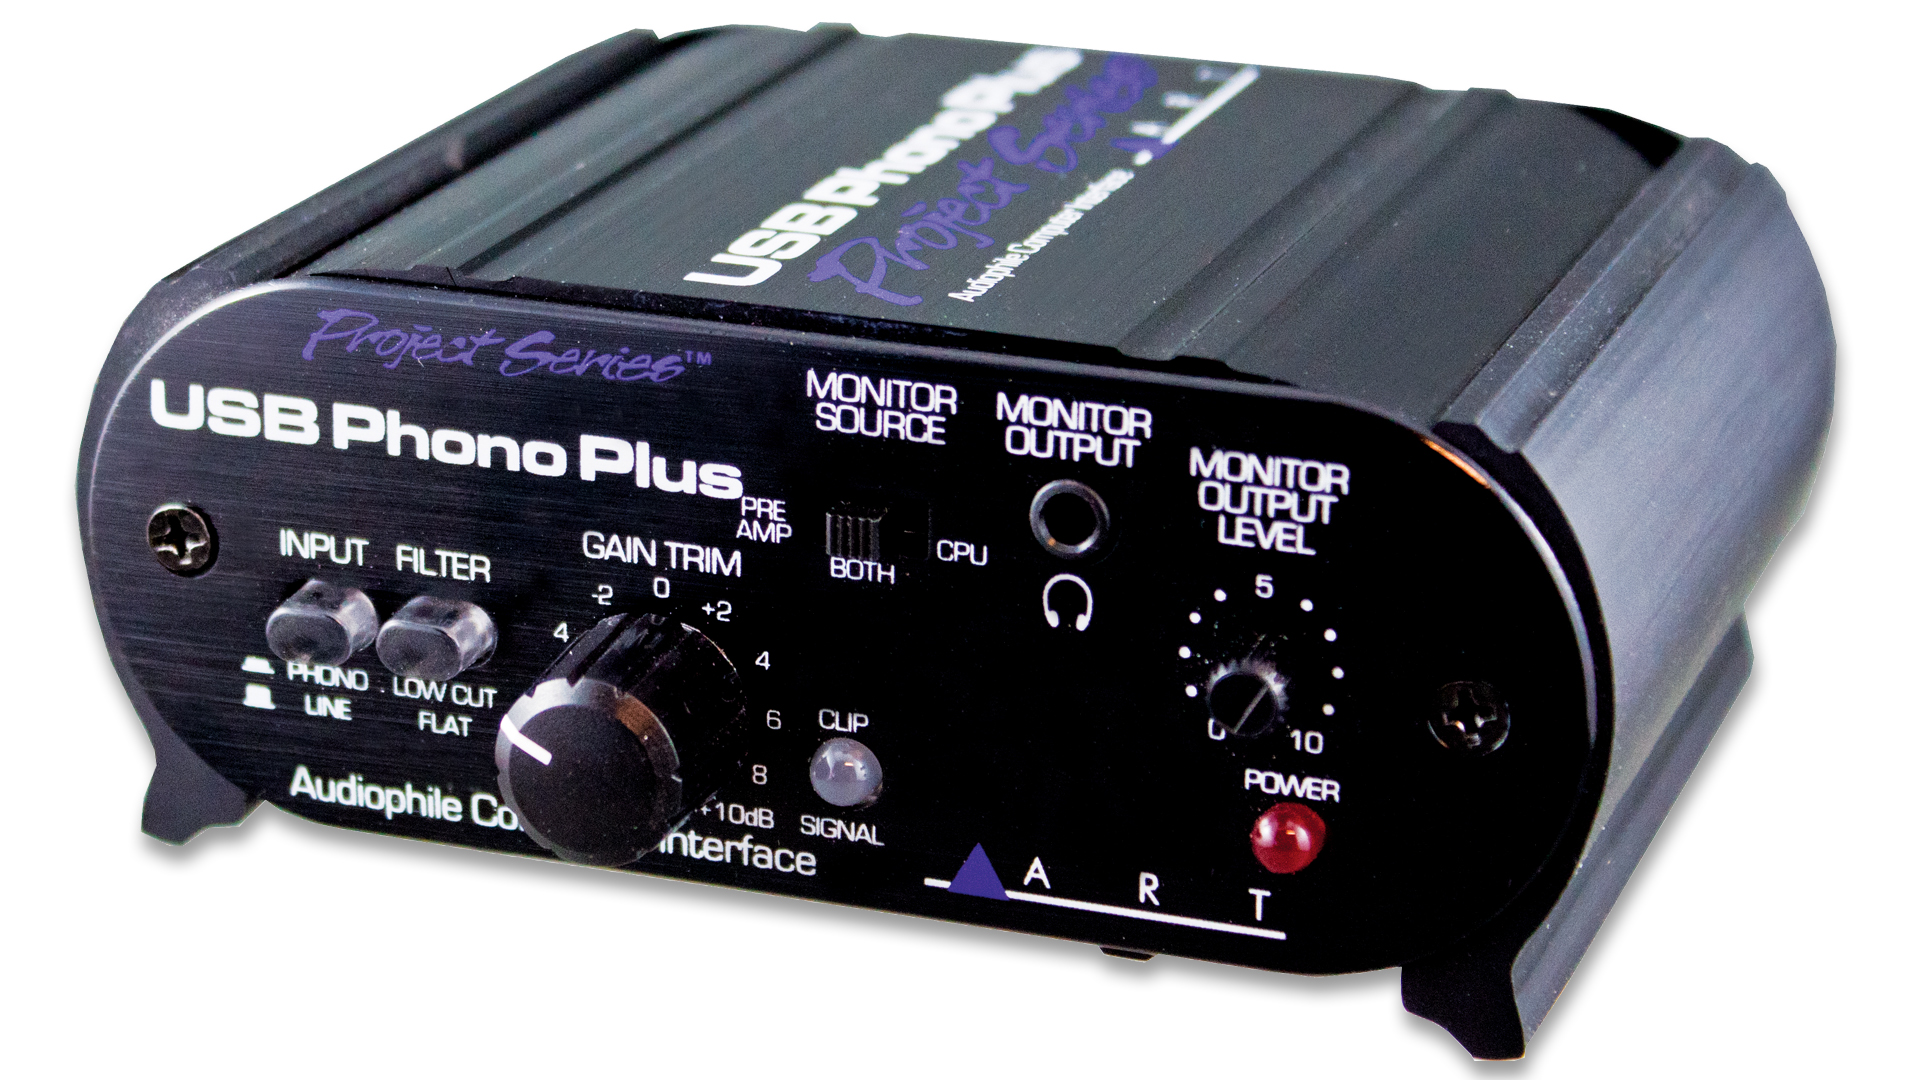 Usb Phono Plus Project Series Art Pro Audio Mixers Projects Circuits 7 Overview Downloads